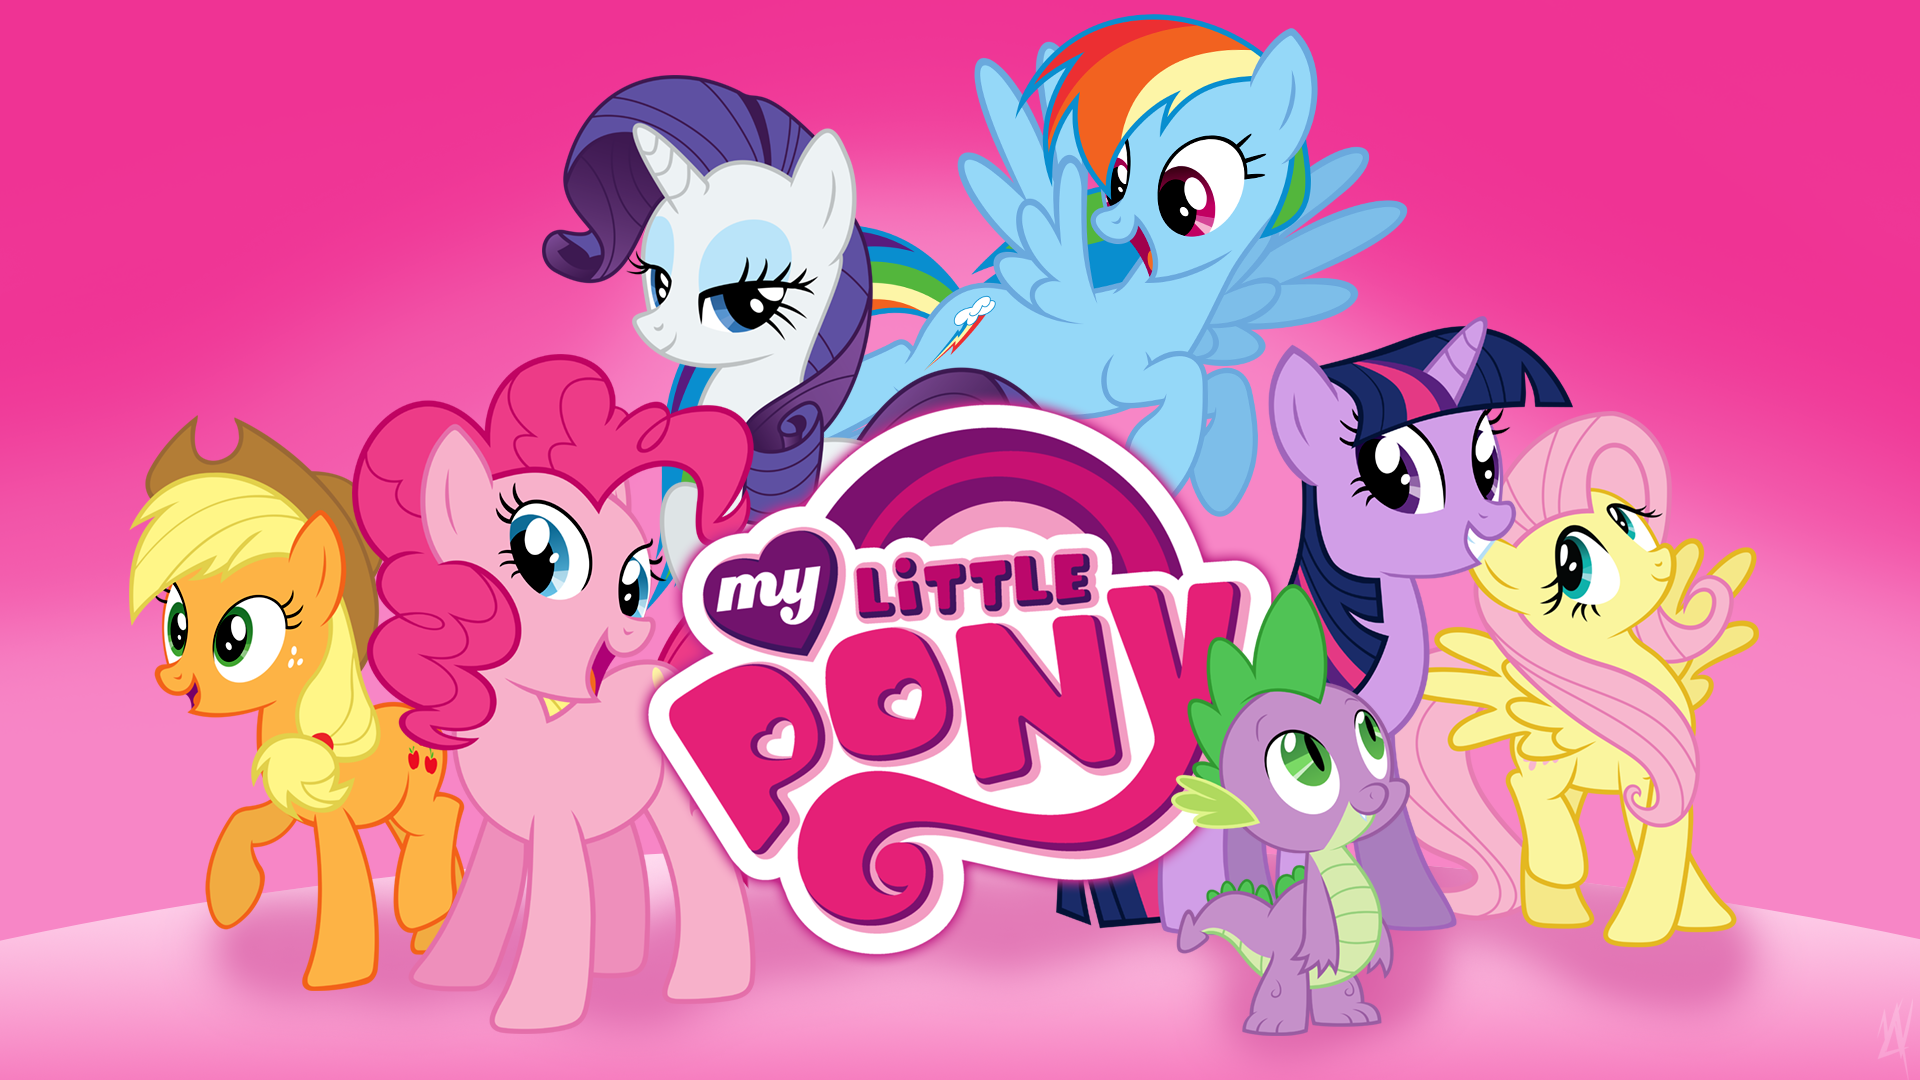 My Little Pony Game Wallpaper (Recreated) by HankOfficer, Hawk9mm, Myardius, MyLittleVisuals, MysteriousKaos, Qsteel, Quanno3 and xPesifeindx